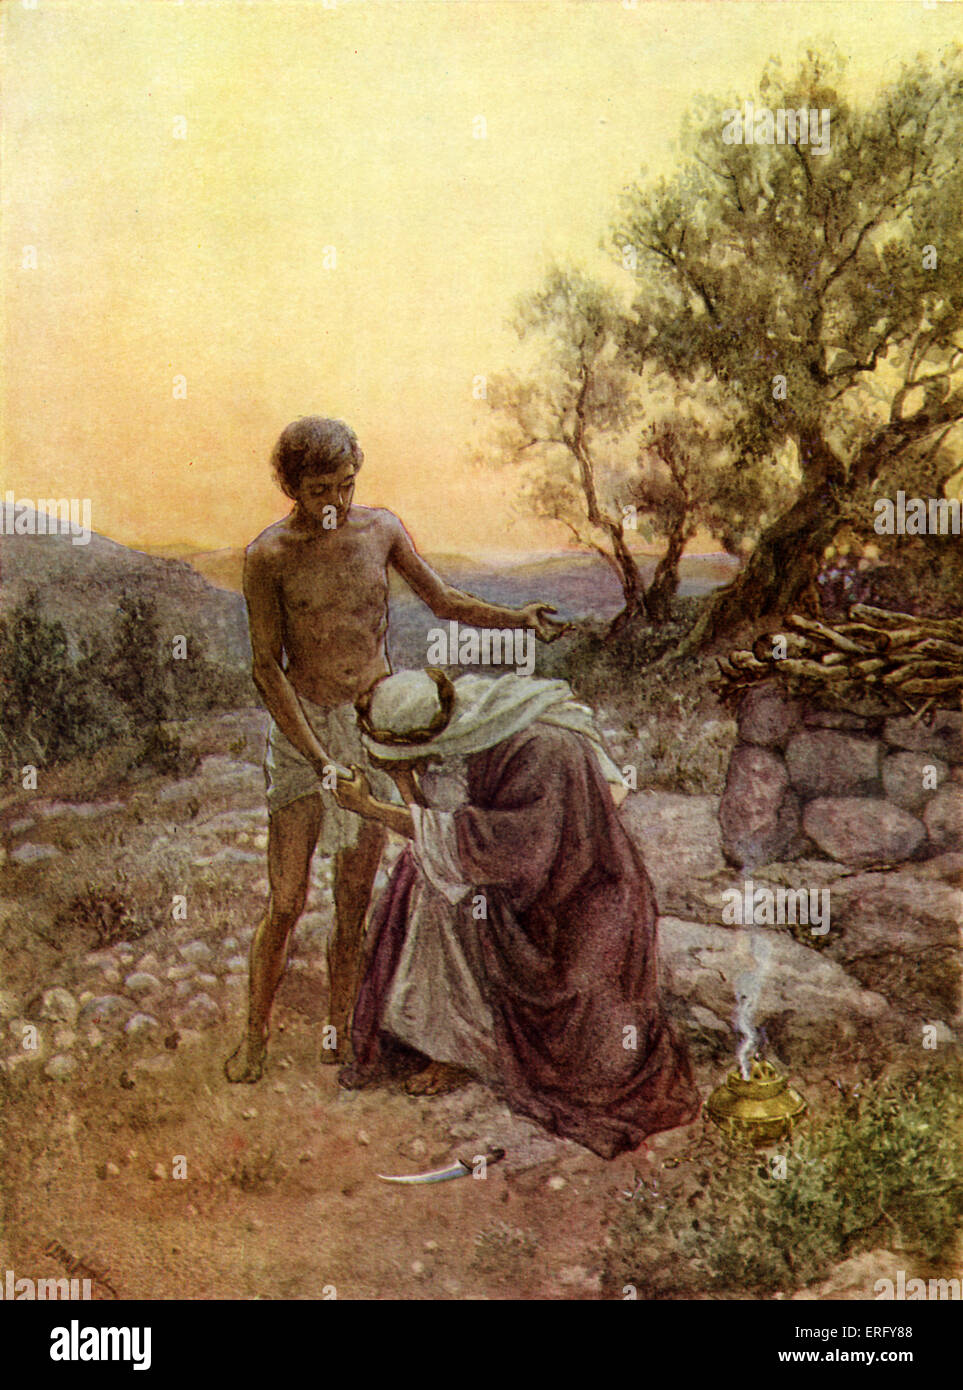 Abraham and Isaac at Mount Moriah. Genesis    Abraham prepares to sacrifice his son for God.  Illustration by William - Stock Image